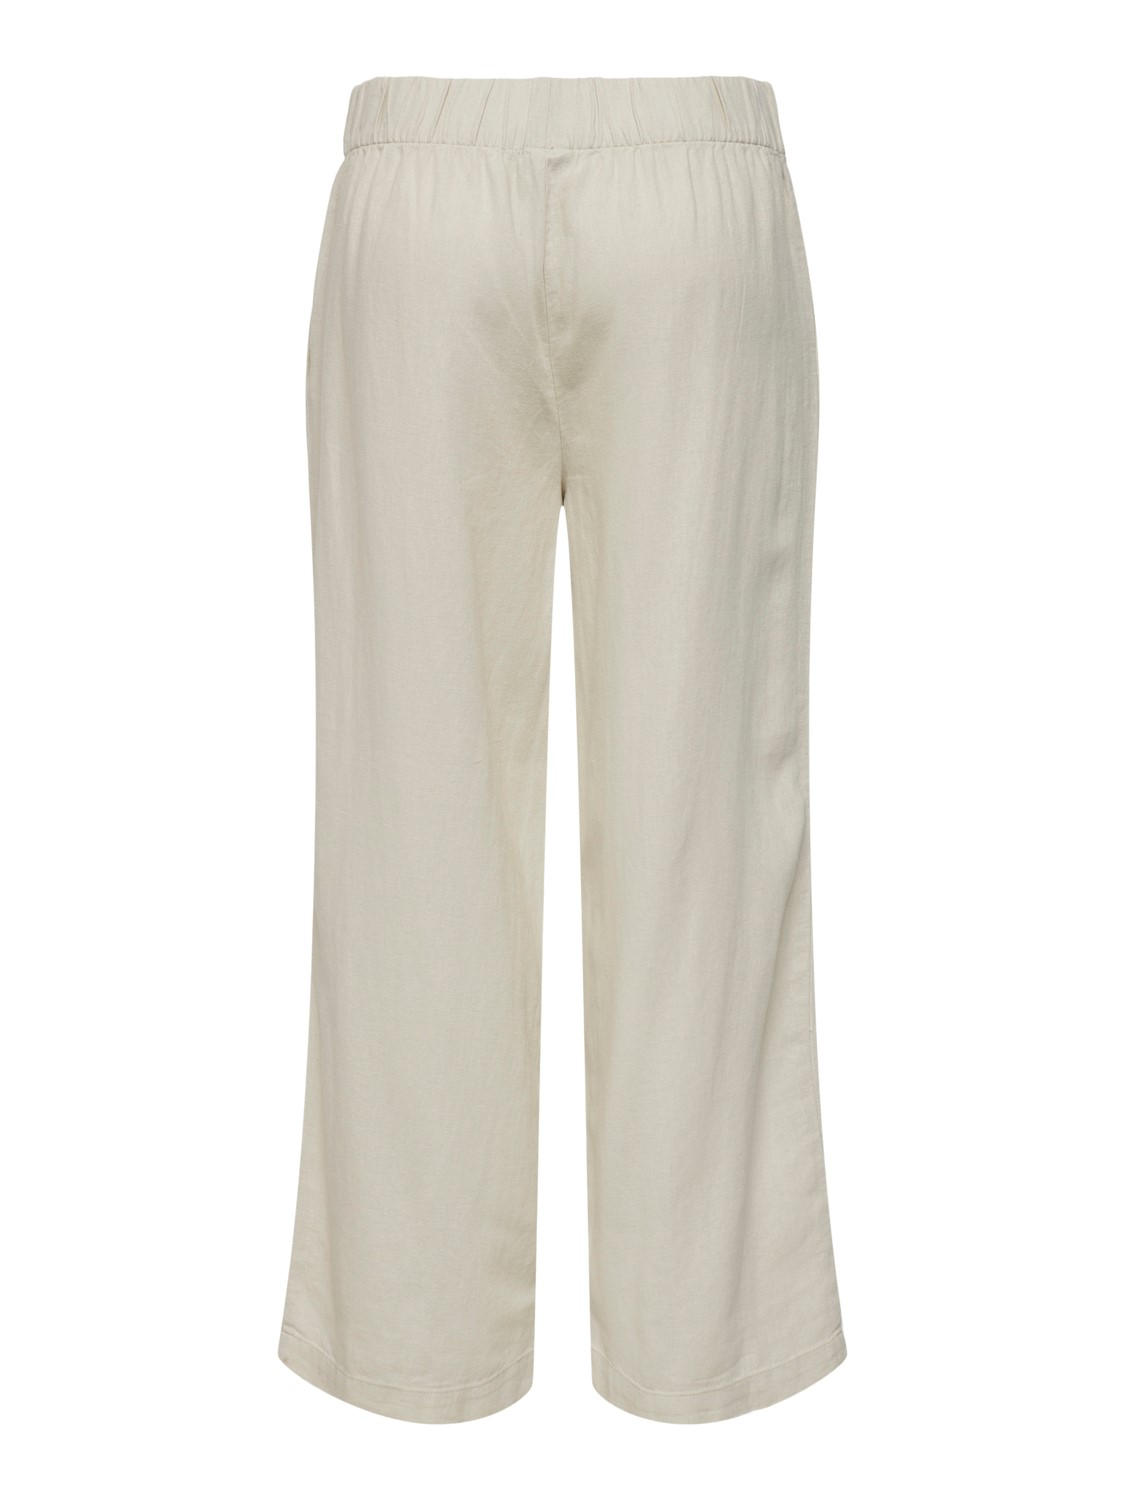 gallery-3514-for-15225920-beige